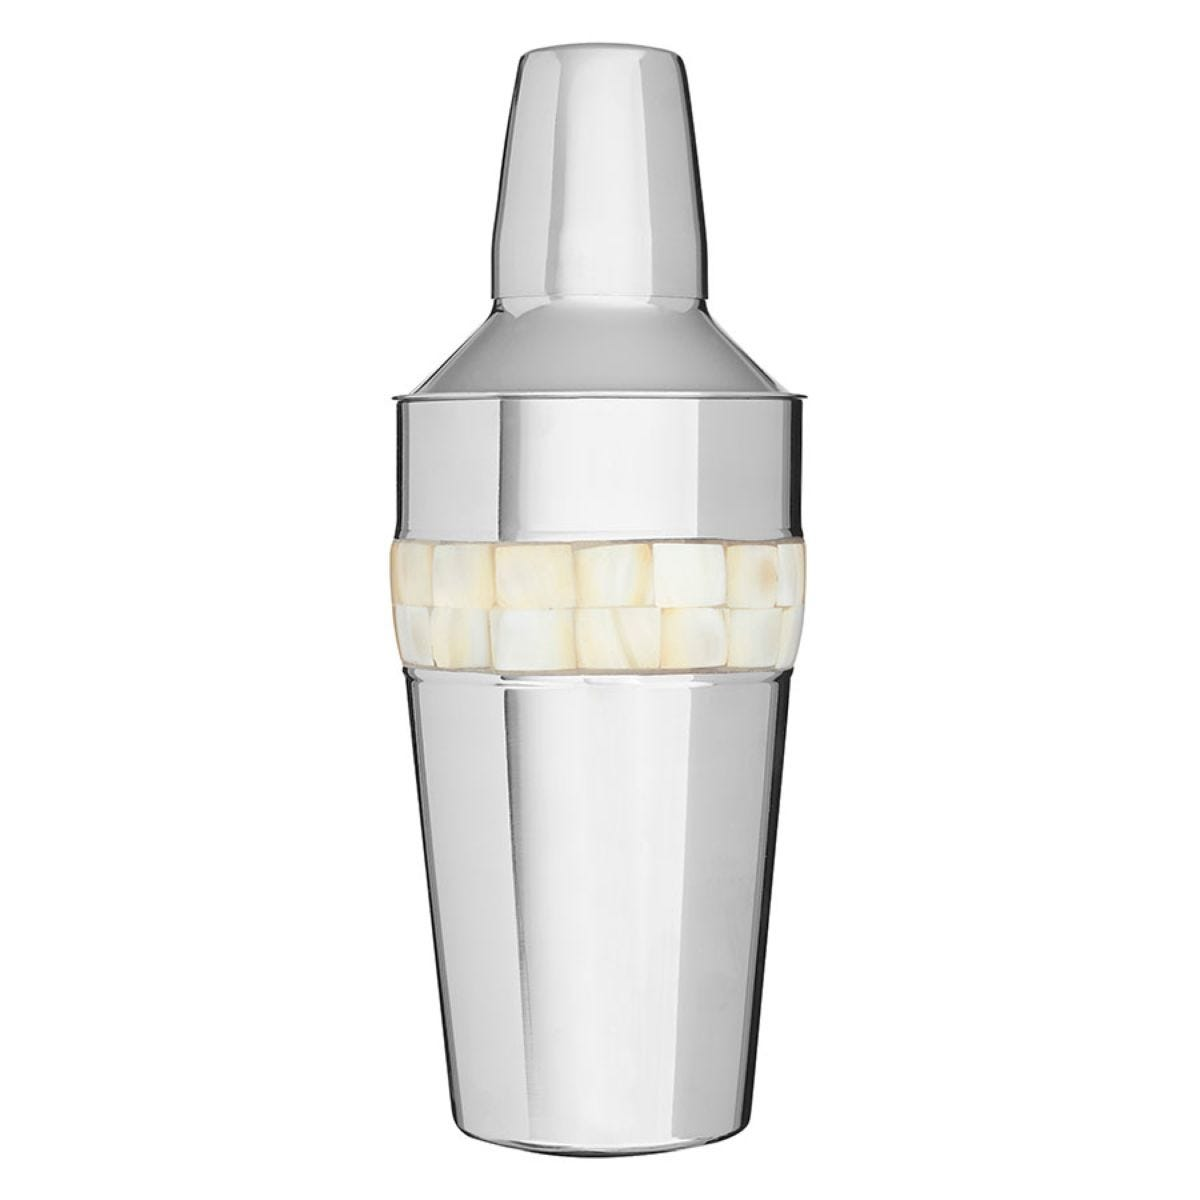 Premier Housewares Mother of Pearl Cocktail Shaker - Stainless Steel